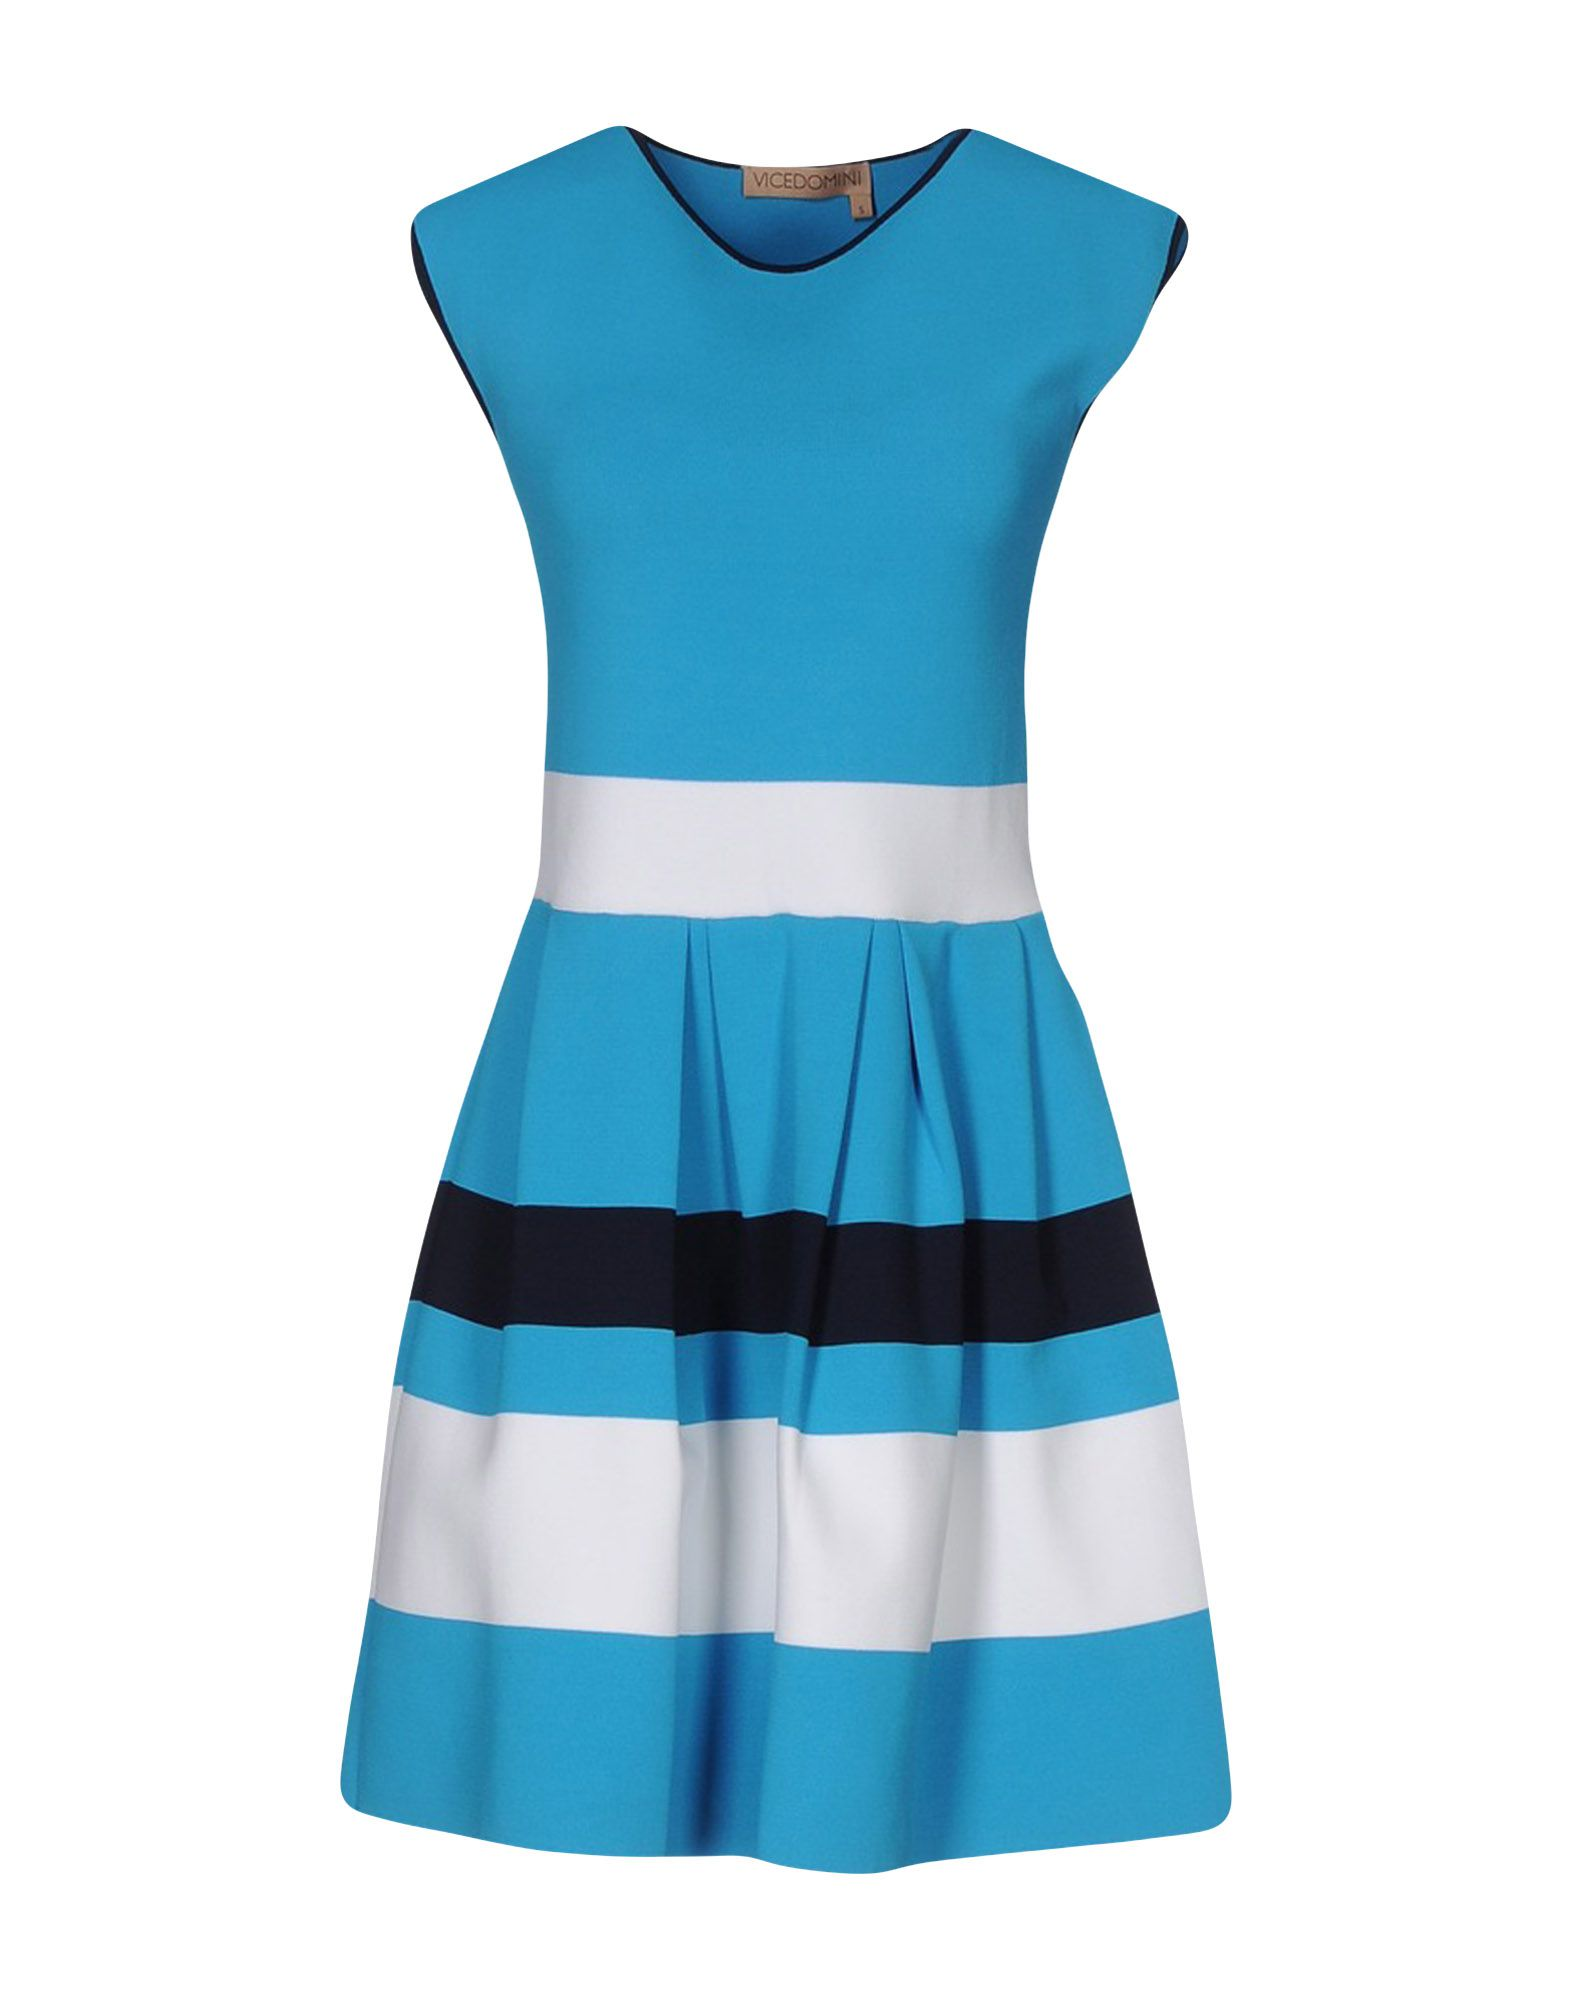 VICEDOMINI Short Dress in Azure